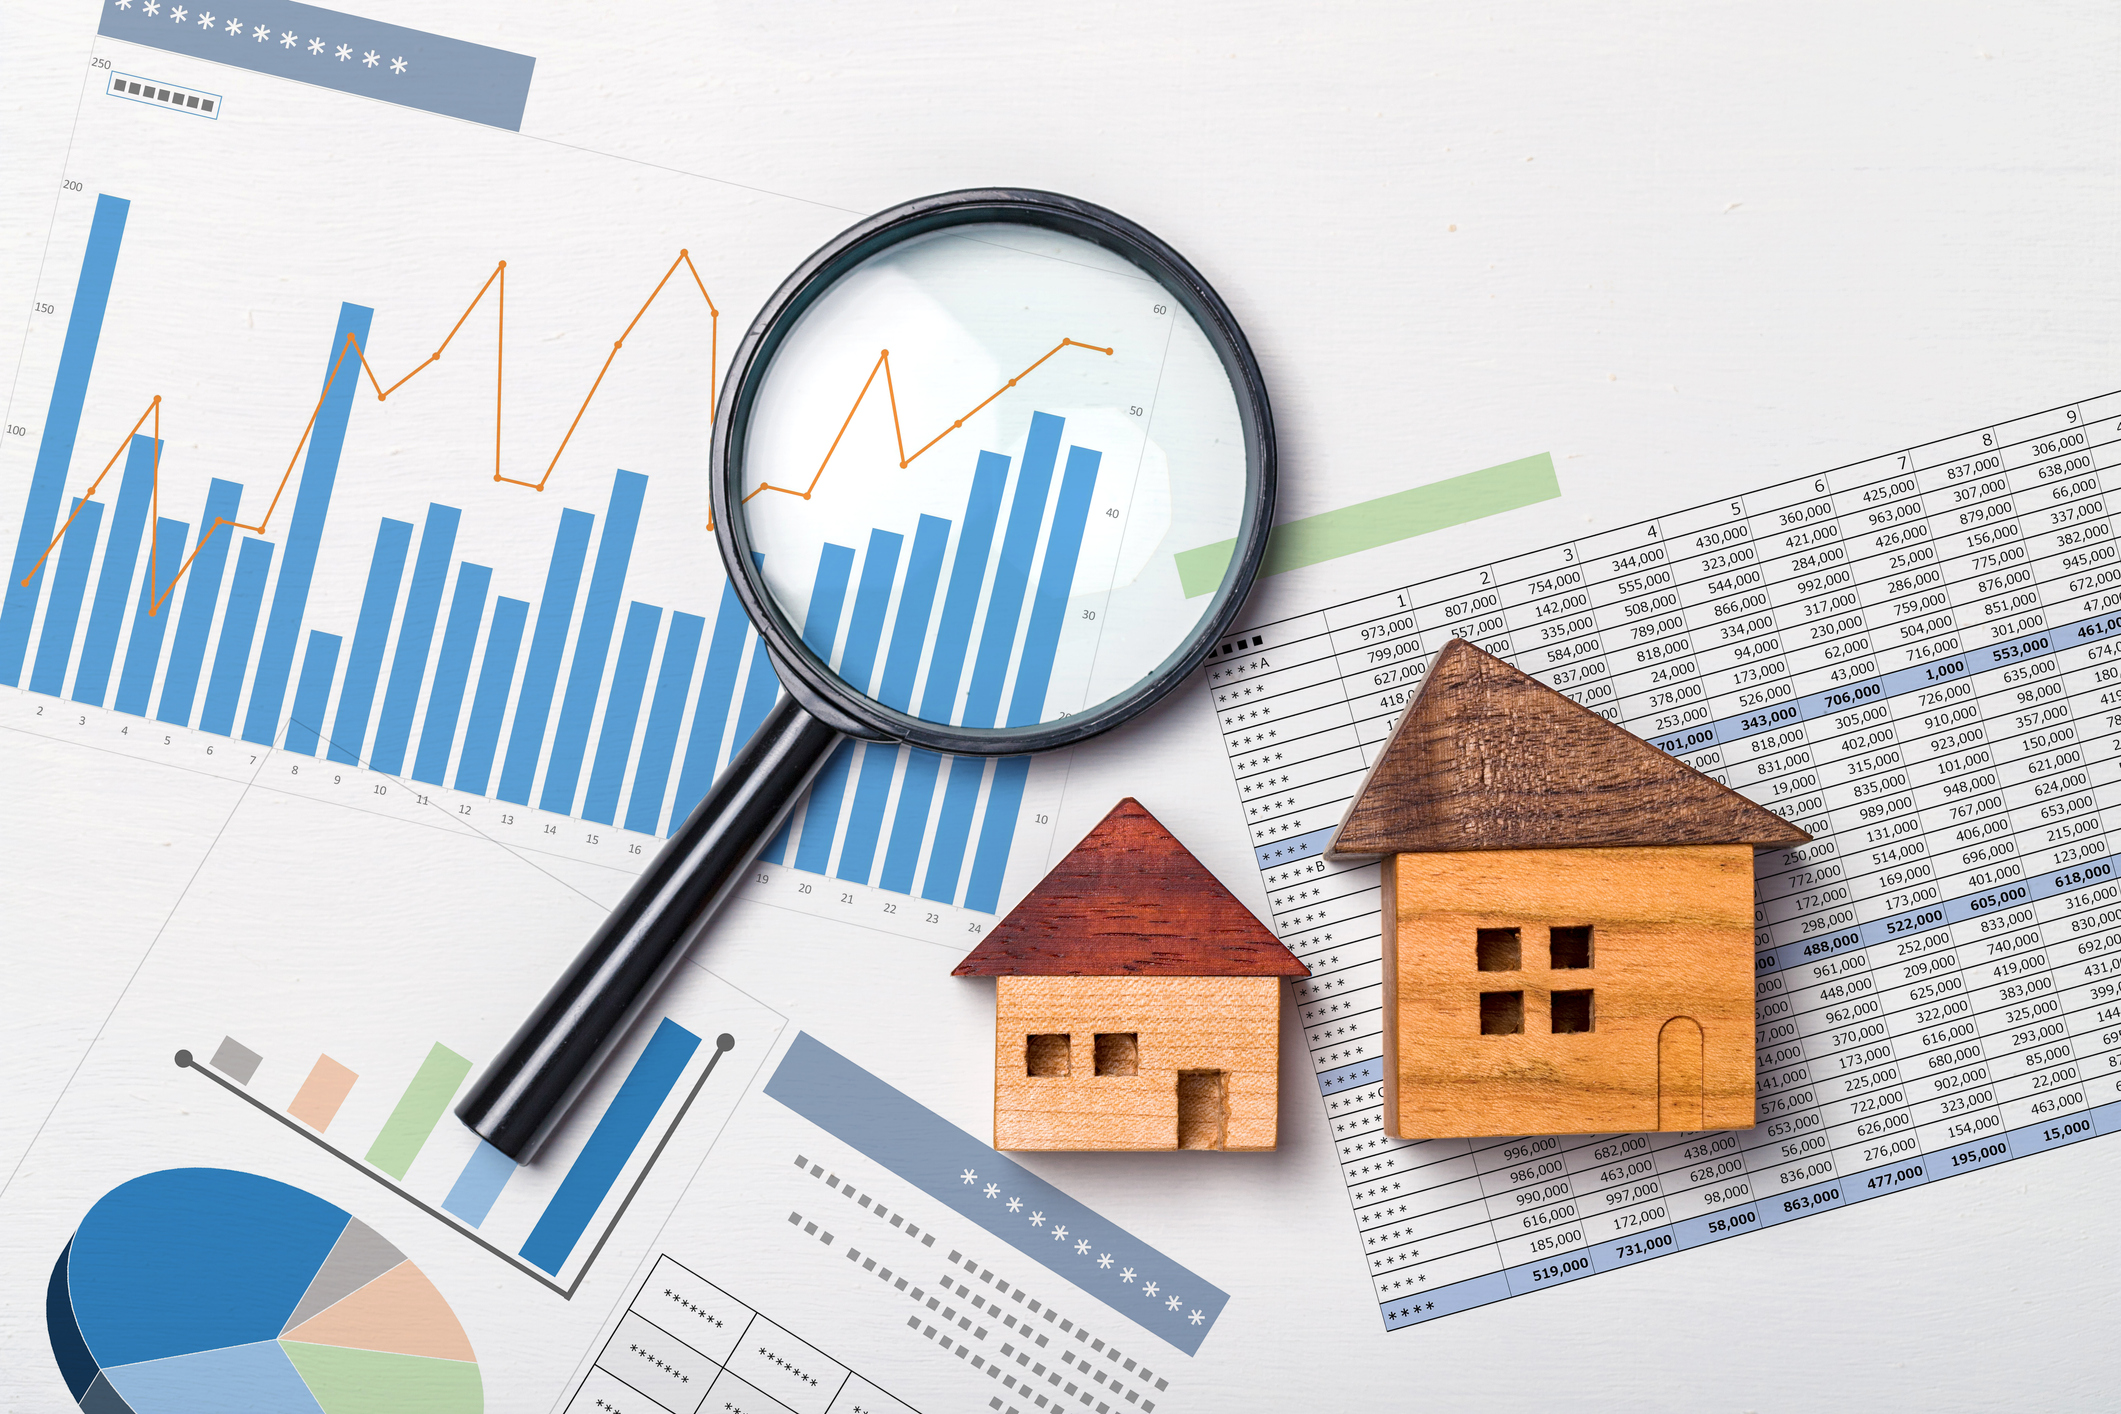 image of charts, magnifying glass, and mini wood houses to represent real estate market metrics